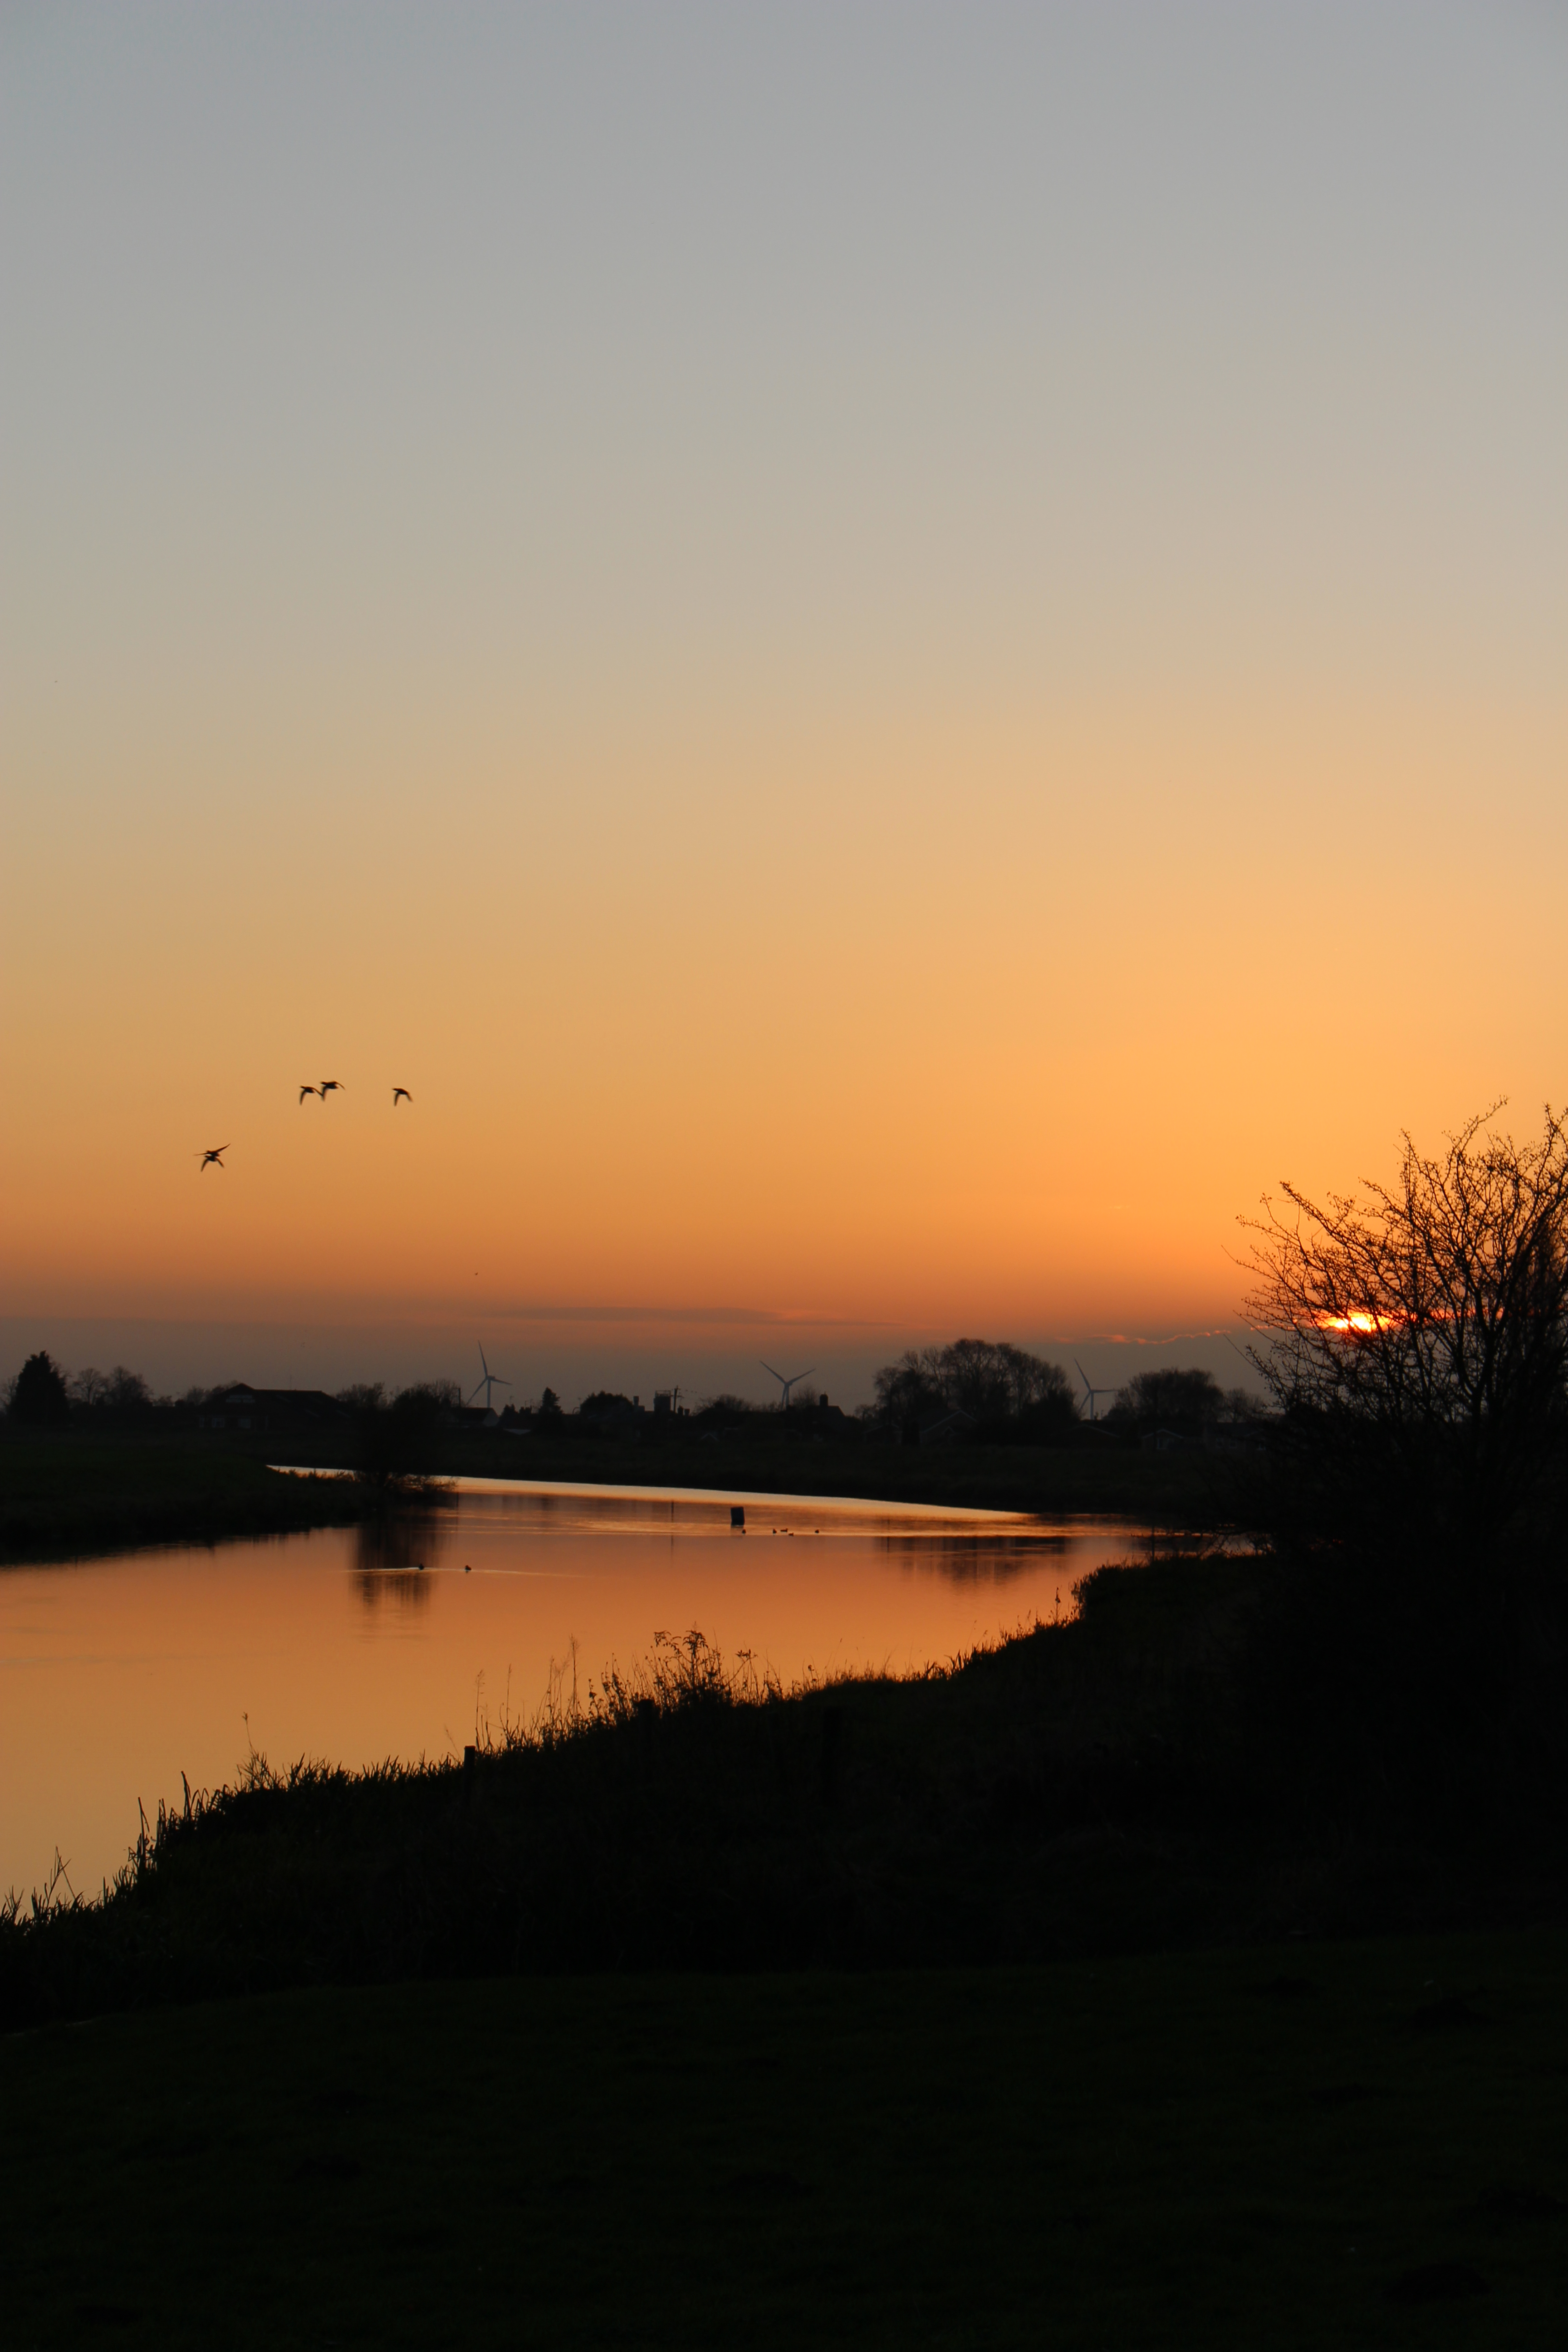 Sunset on the River Welland